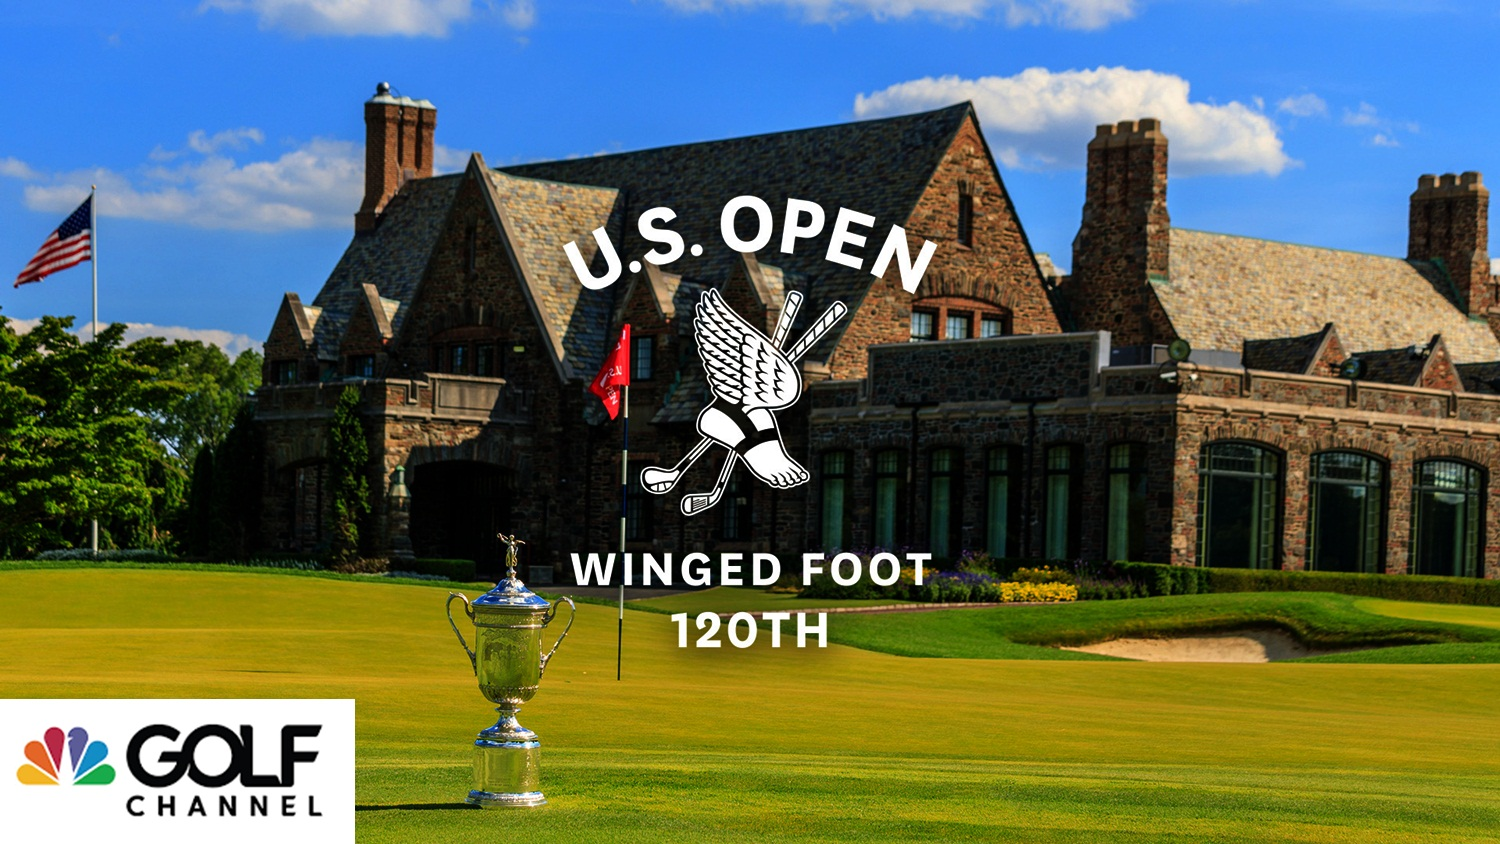 US Open Golf 2020